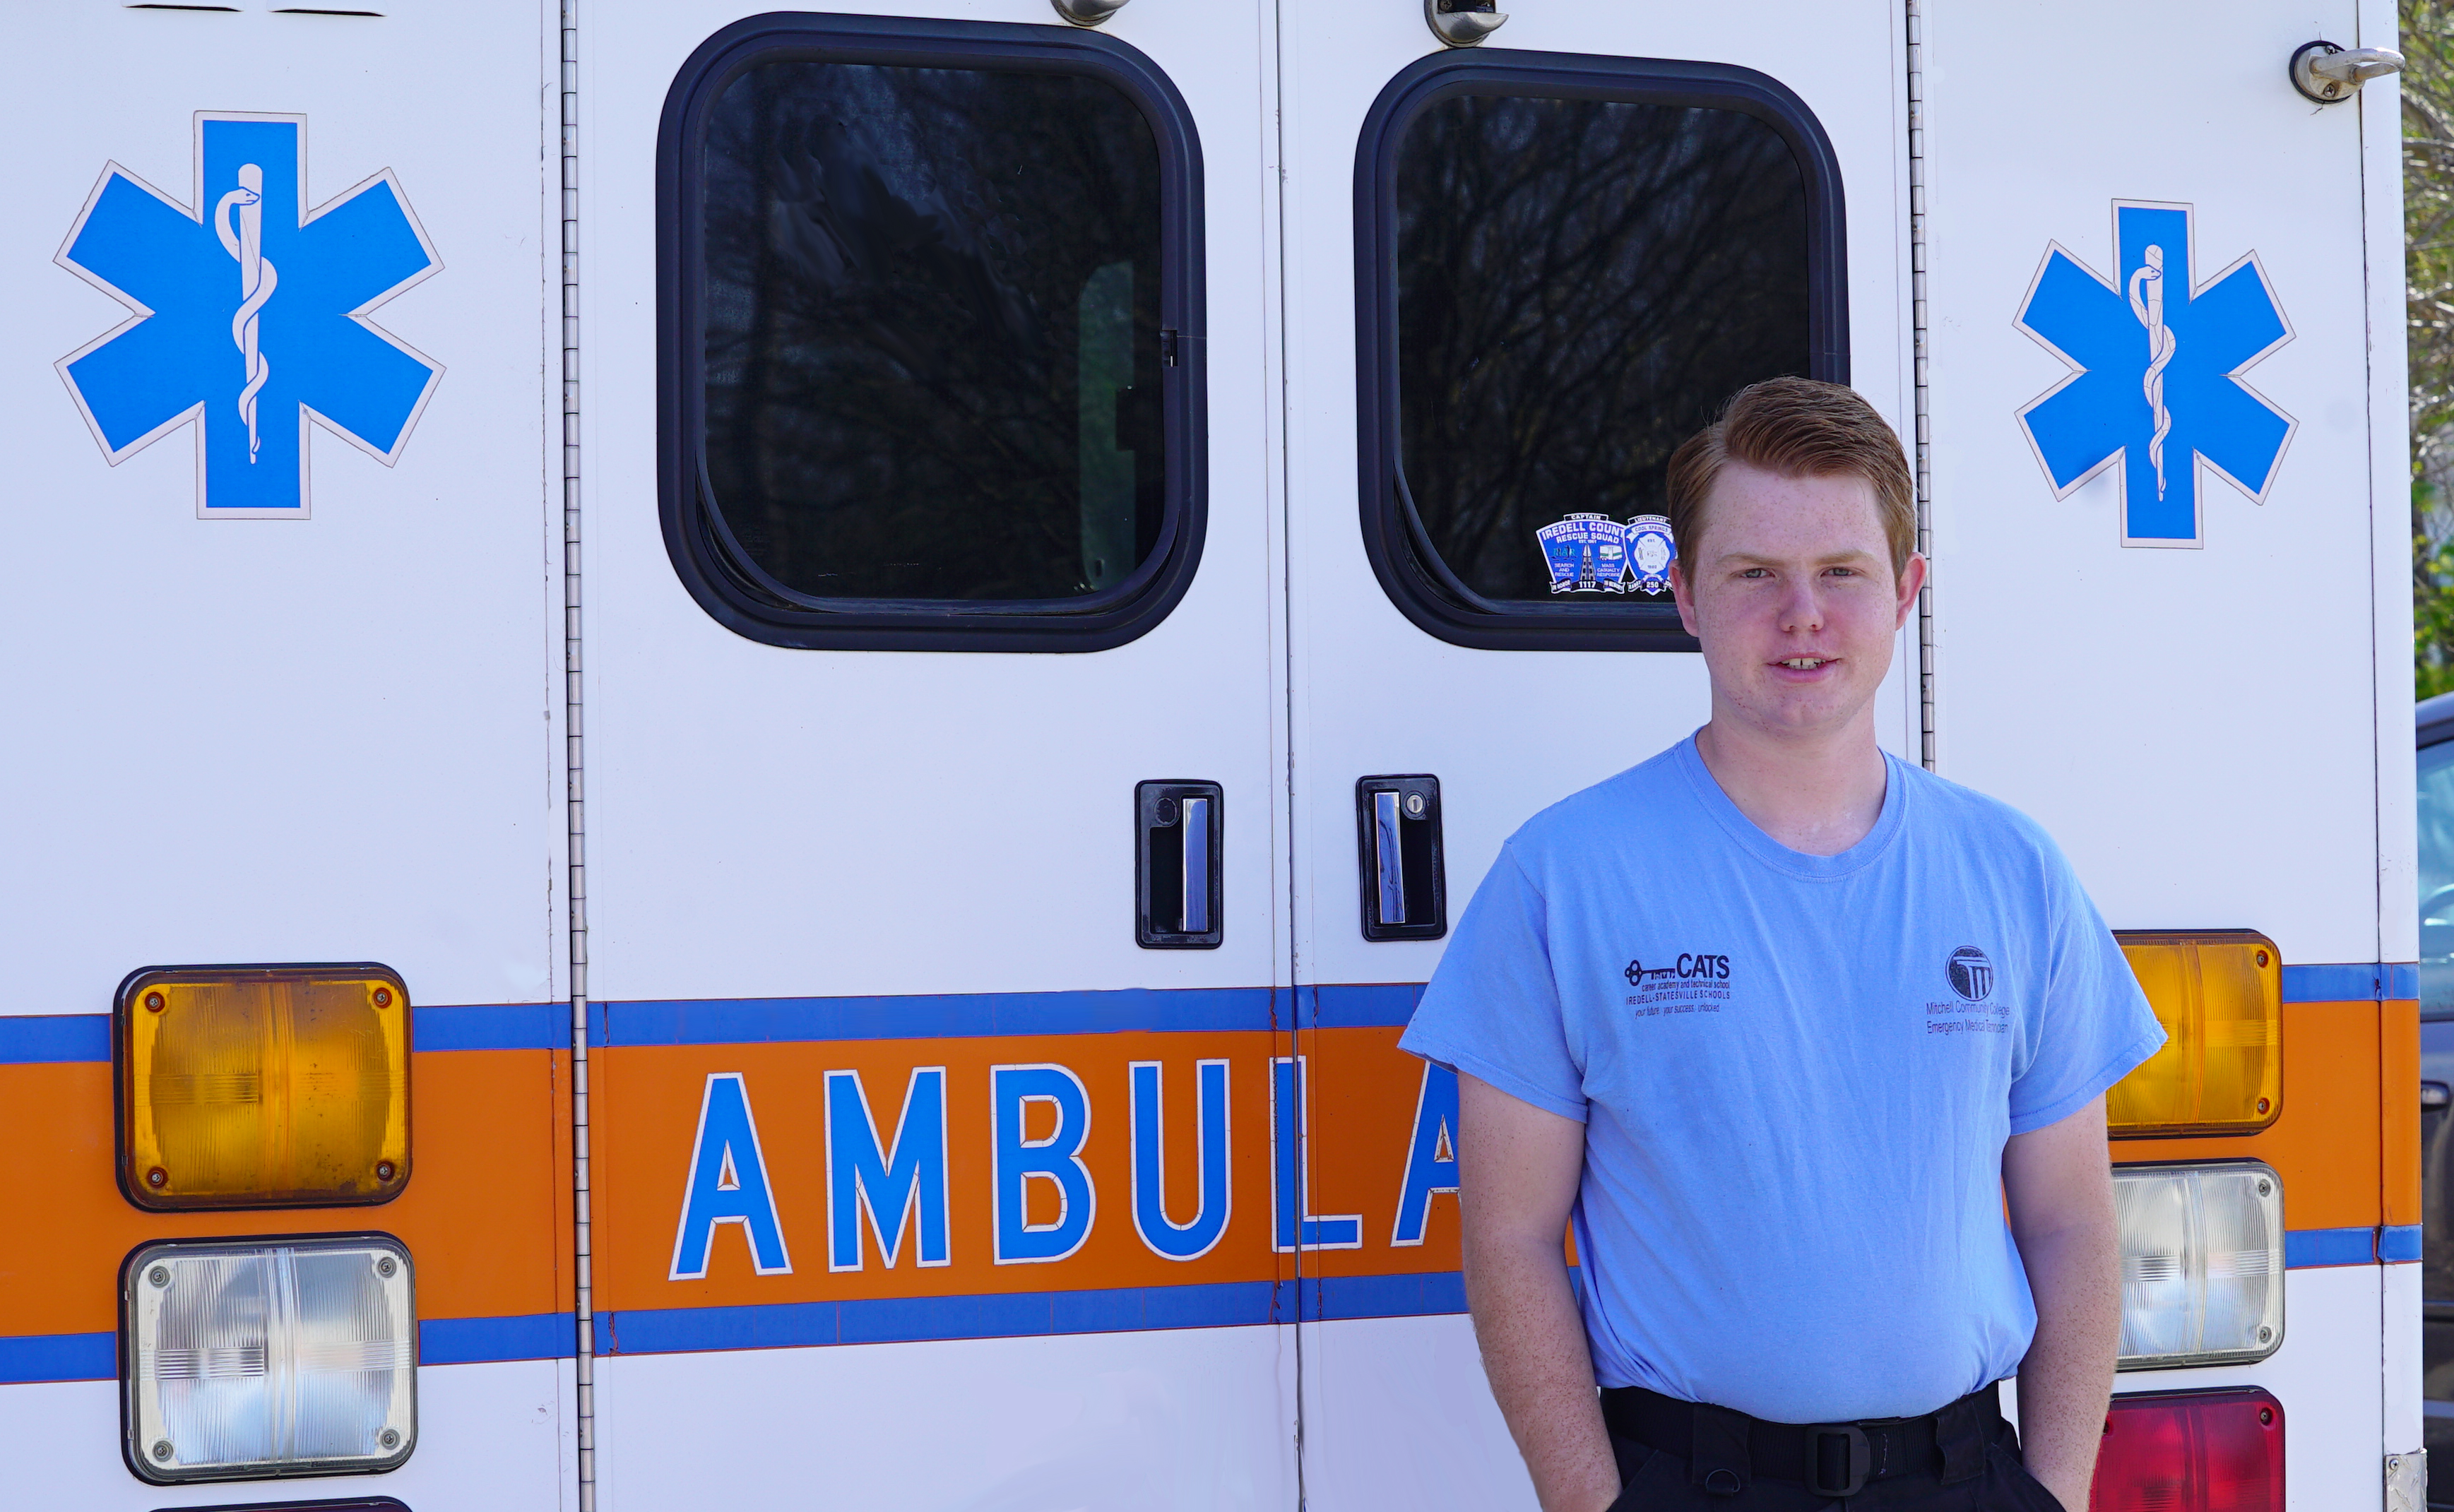 Luke Swing stands in front of an ambulance.